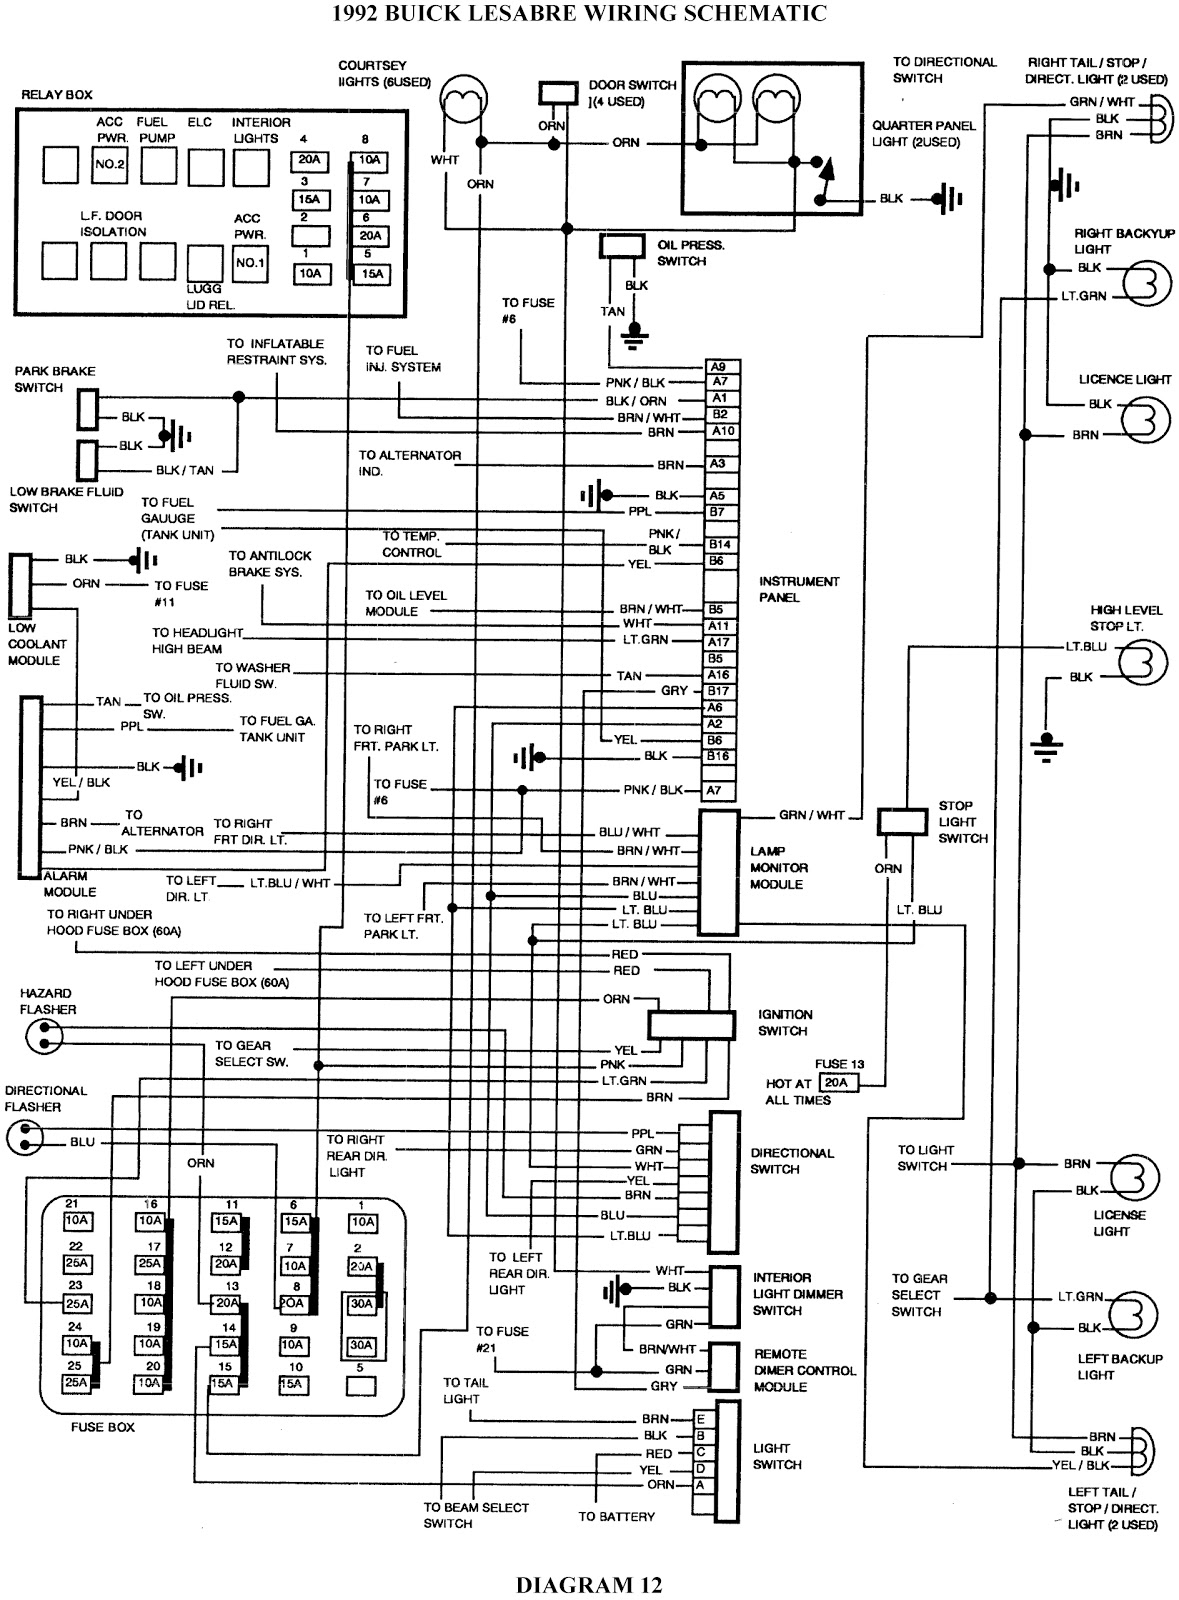 1994 toyota pickup engine electrical wiring diagram 1992 buick lesabre schematic wiring diagrams schematic toyota pickup truck headlights wiring #12